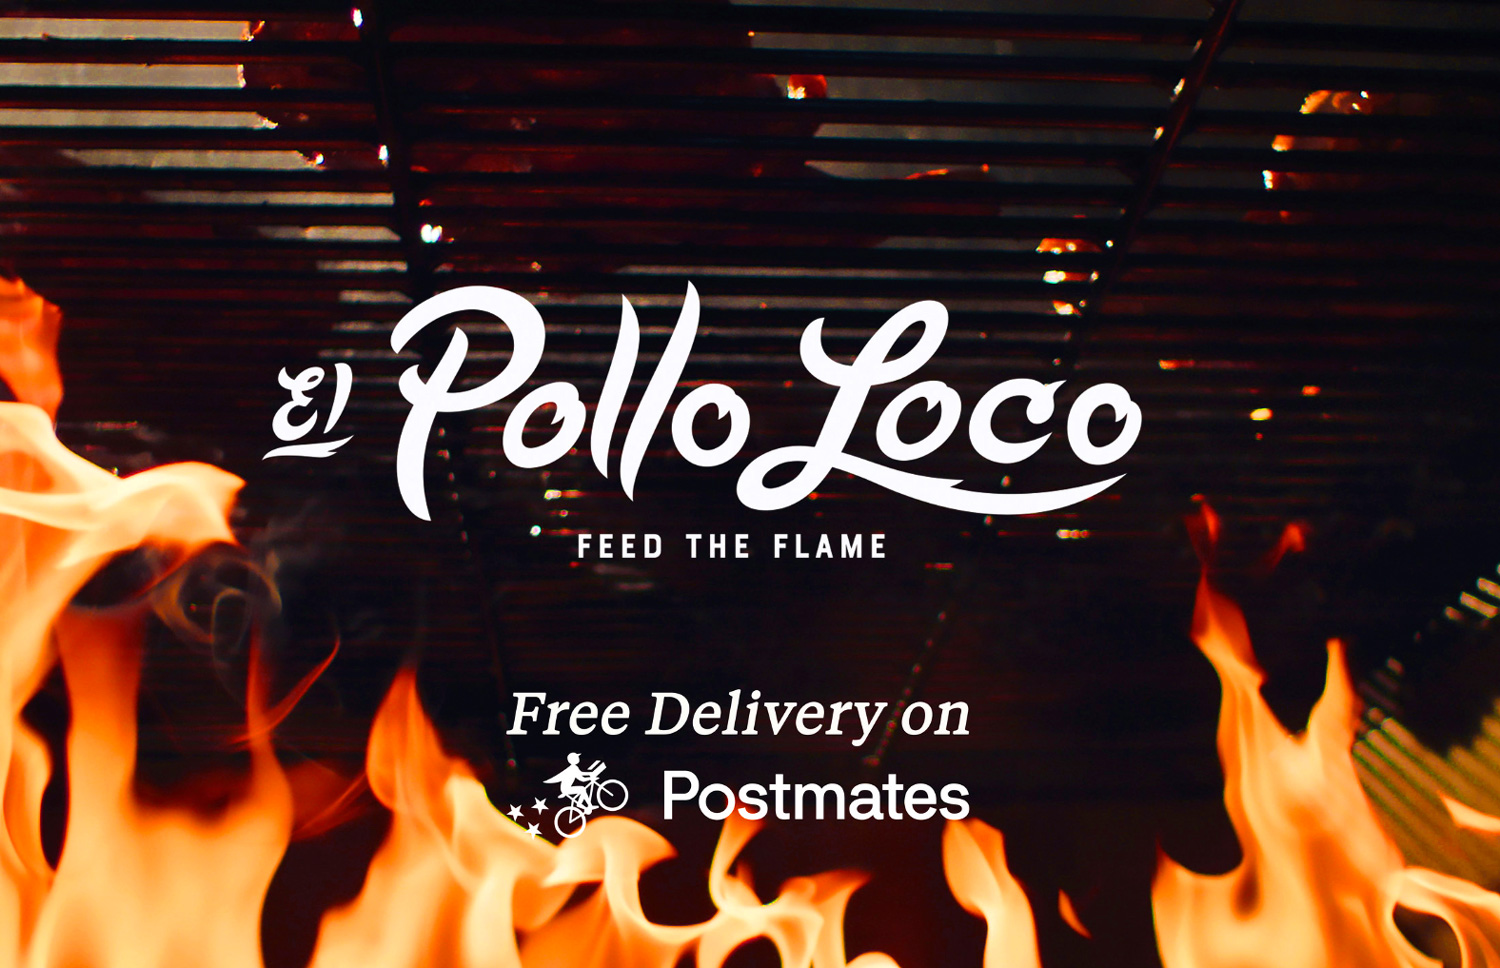 el-pollo-loco-new-logo-designed-by-drew-dougherty